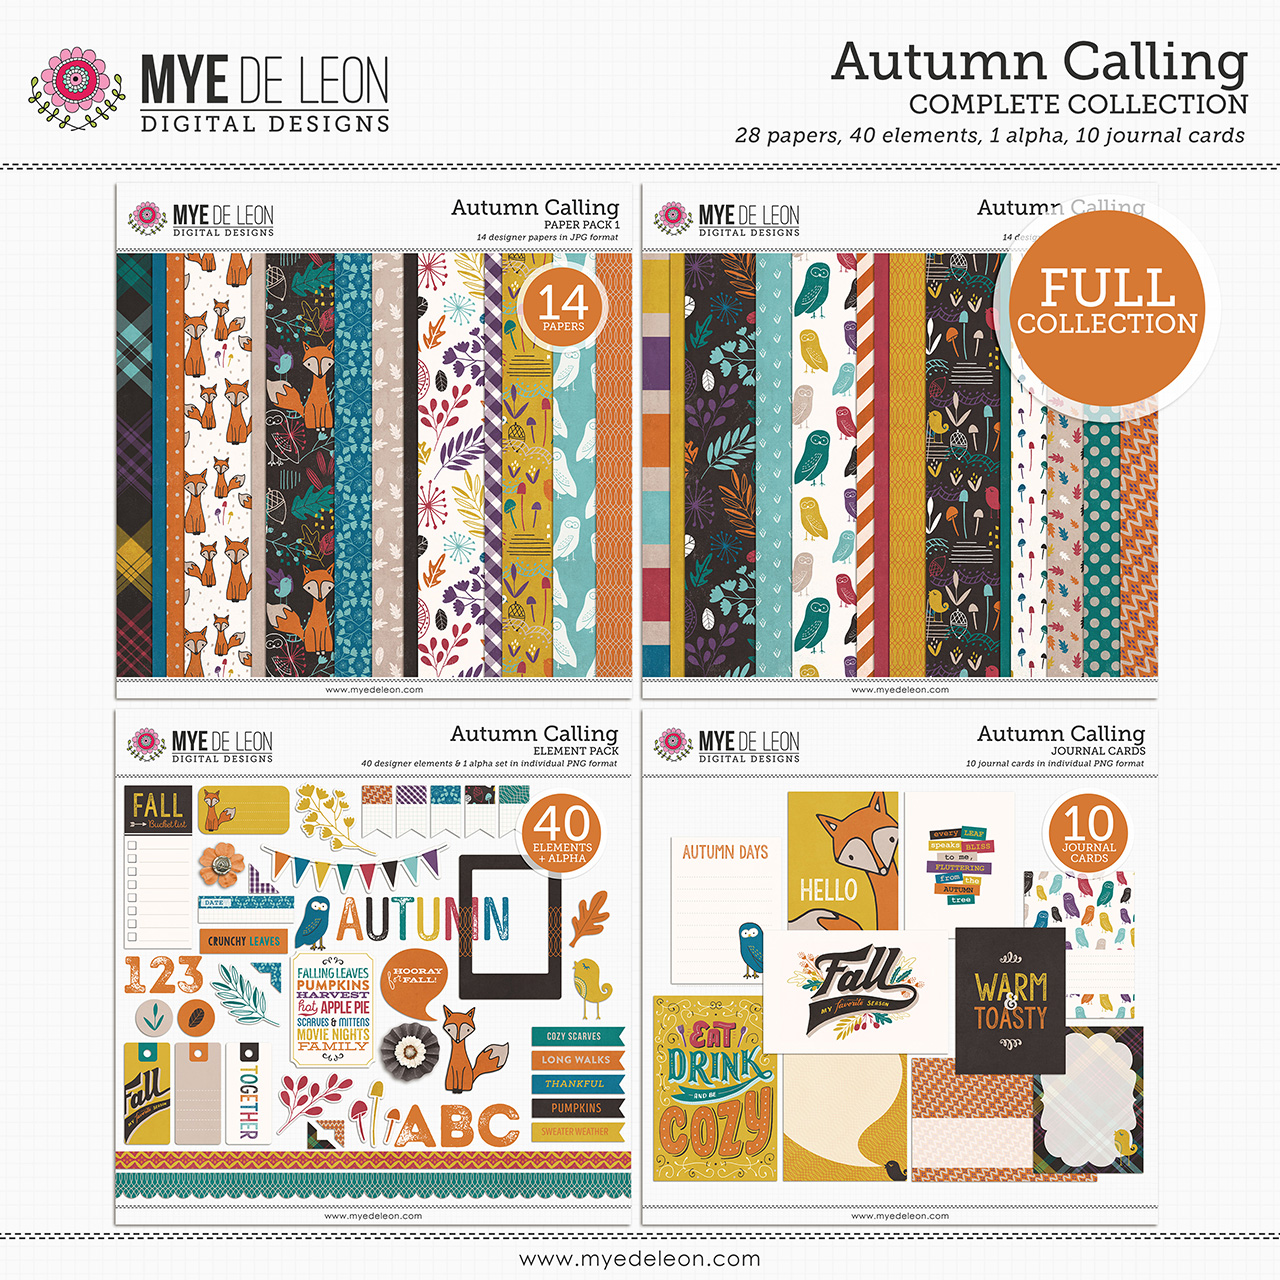 Autumn Calling | Complete Collection